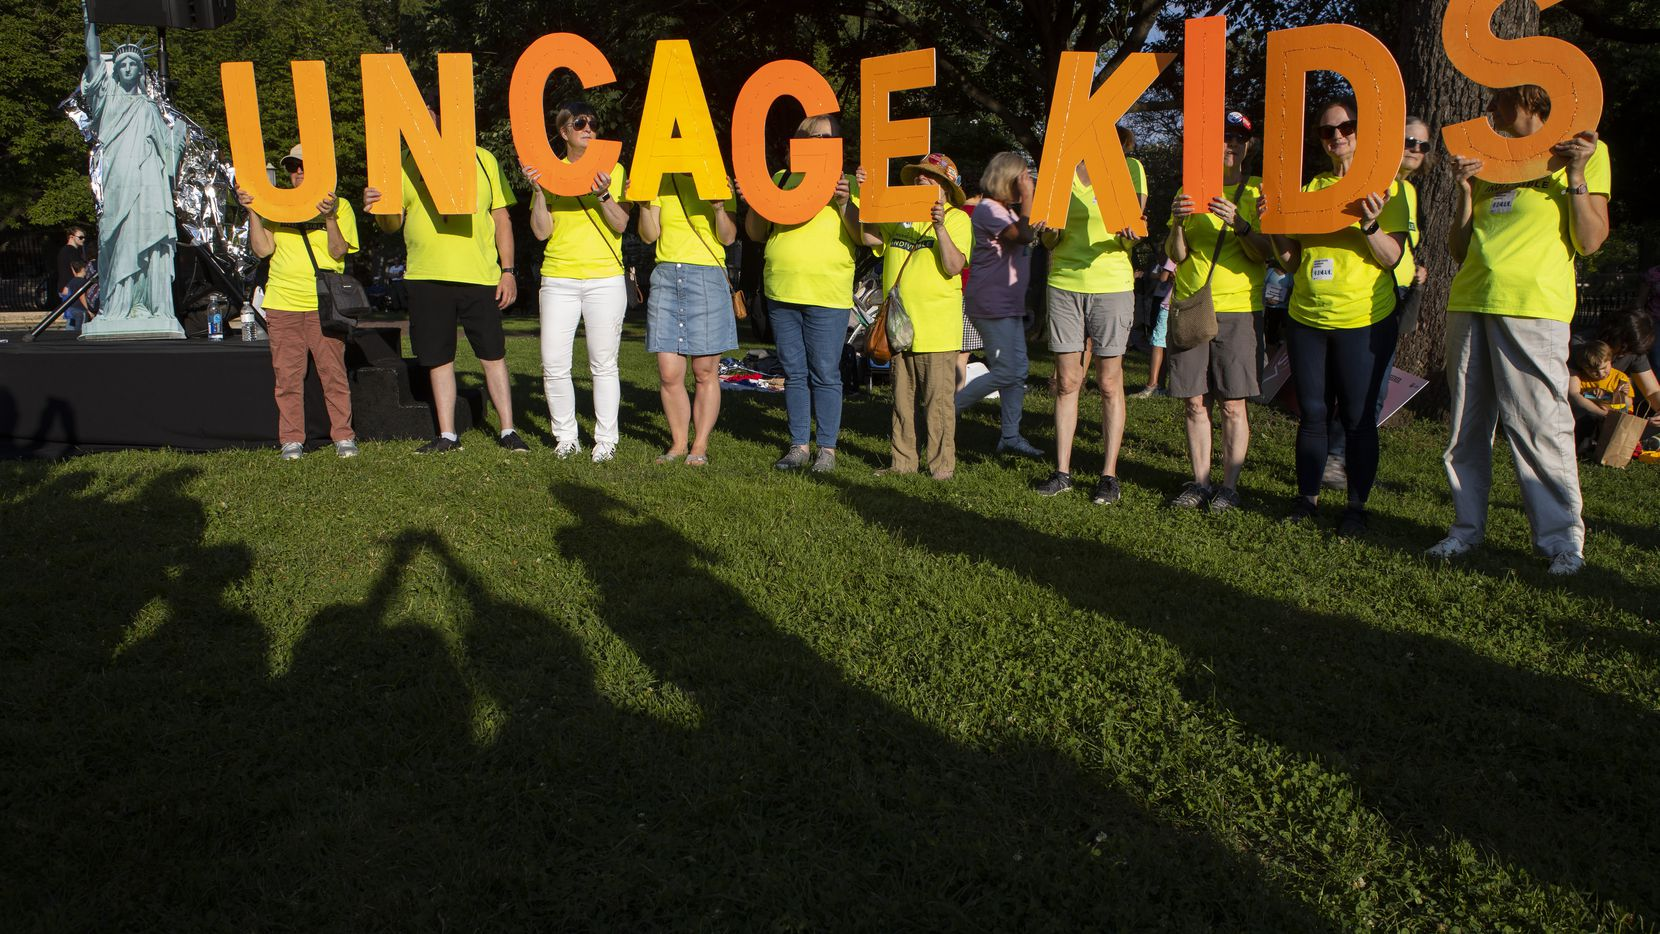 In this July 12, 2019, file photo, protesters hold up a sign that reads 'uncage kids' during a rally in Lafayette Park near the White House where they were calling for and end to immigrant children's detention and family separations. The U.S. government didn't have the technology needed to properly document and track the thousands of immigrant families separated at the southern border in 2018. That's according to a new report by an internal government watchdog.